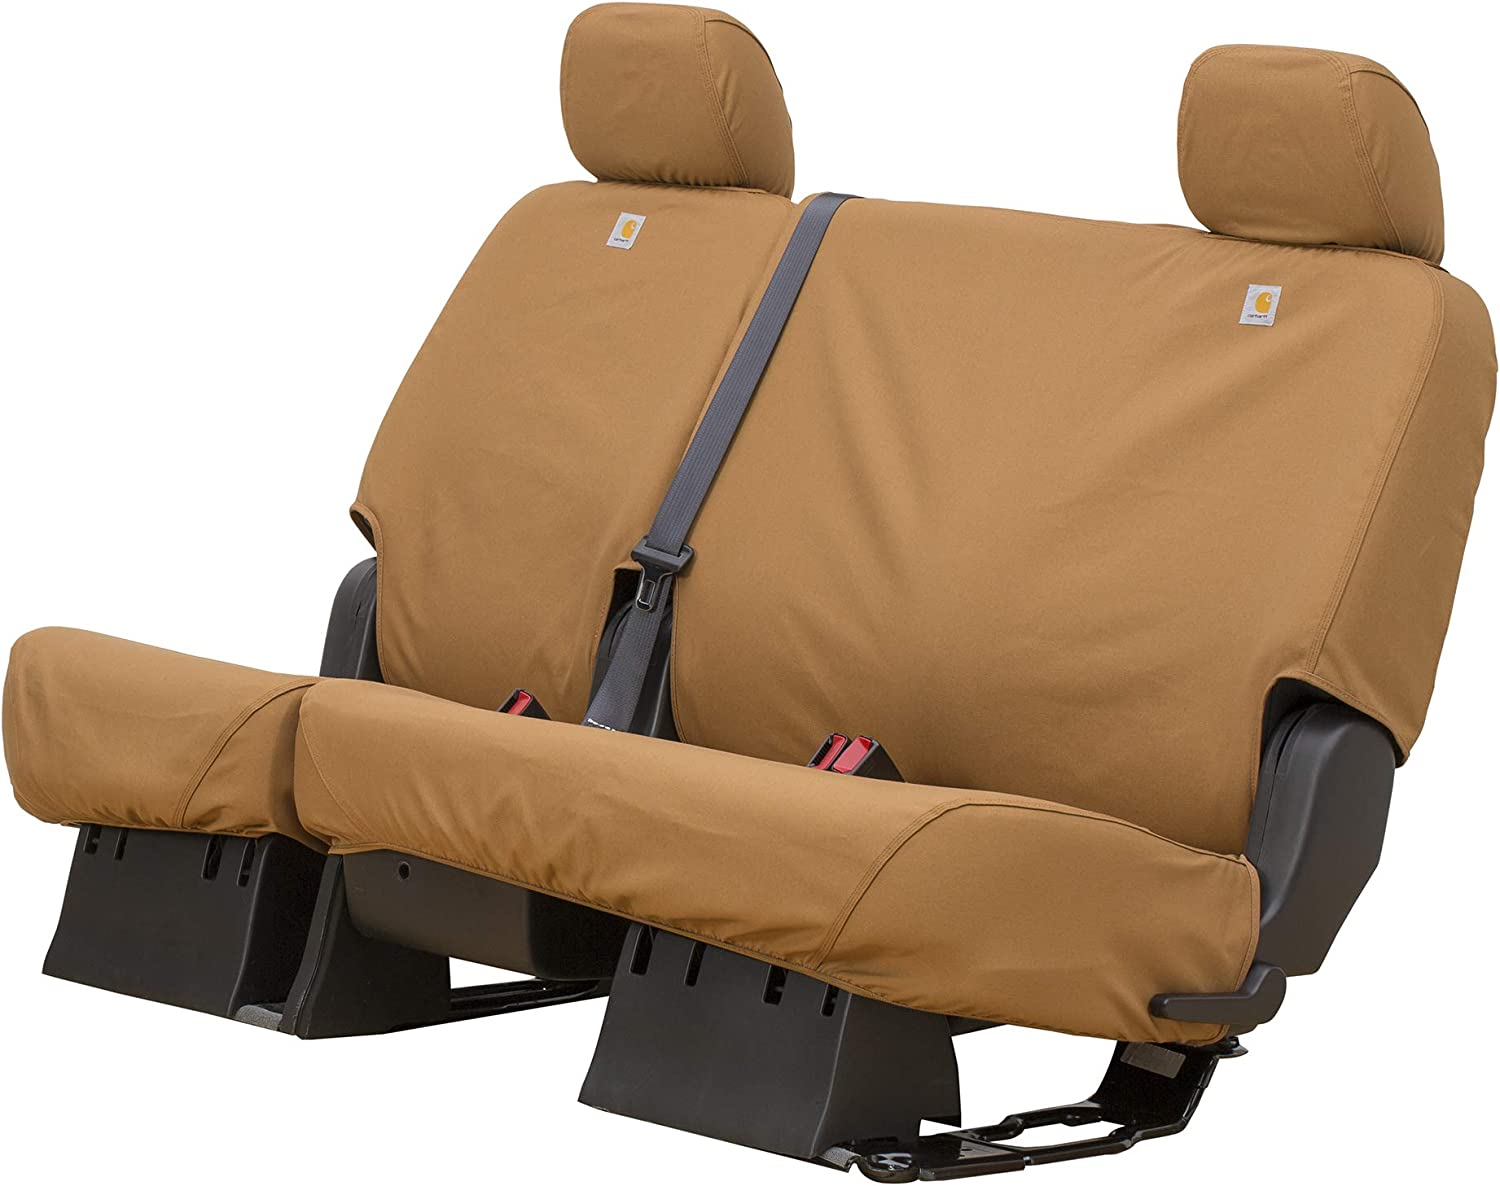 Brown SSC8455CABN Duck Weave Covercraft Carhartt SeatSaver Second Row Custom Fit Seat Cover for Select Toyota Sequoia Models